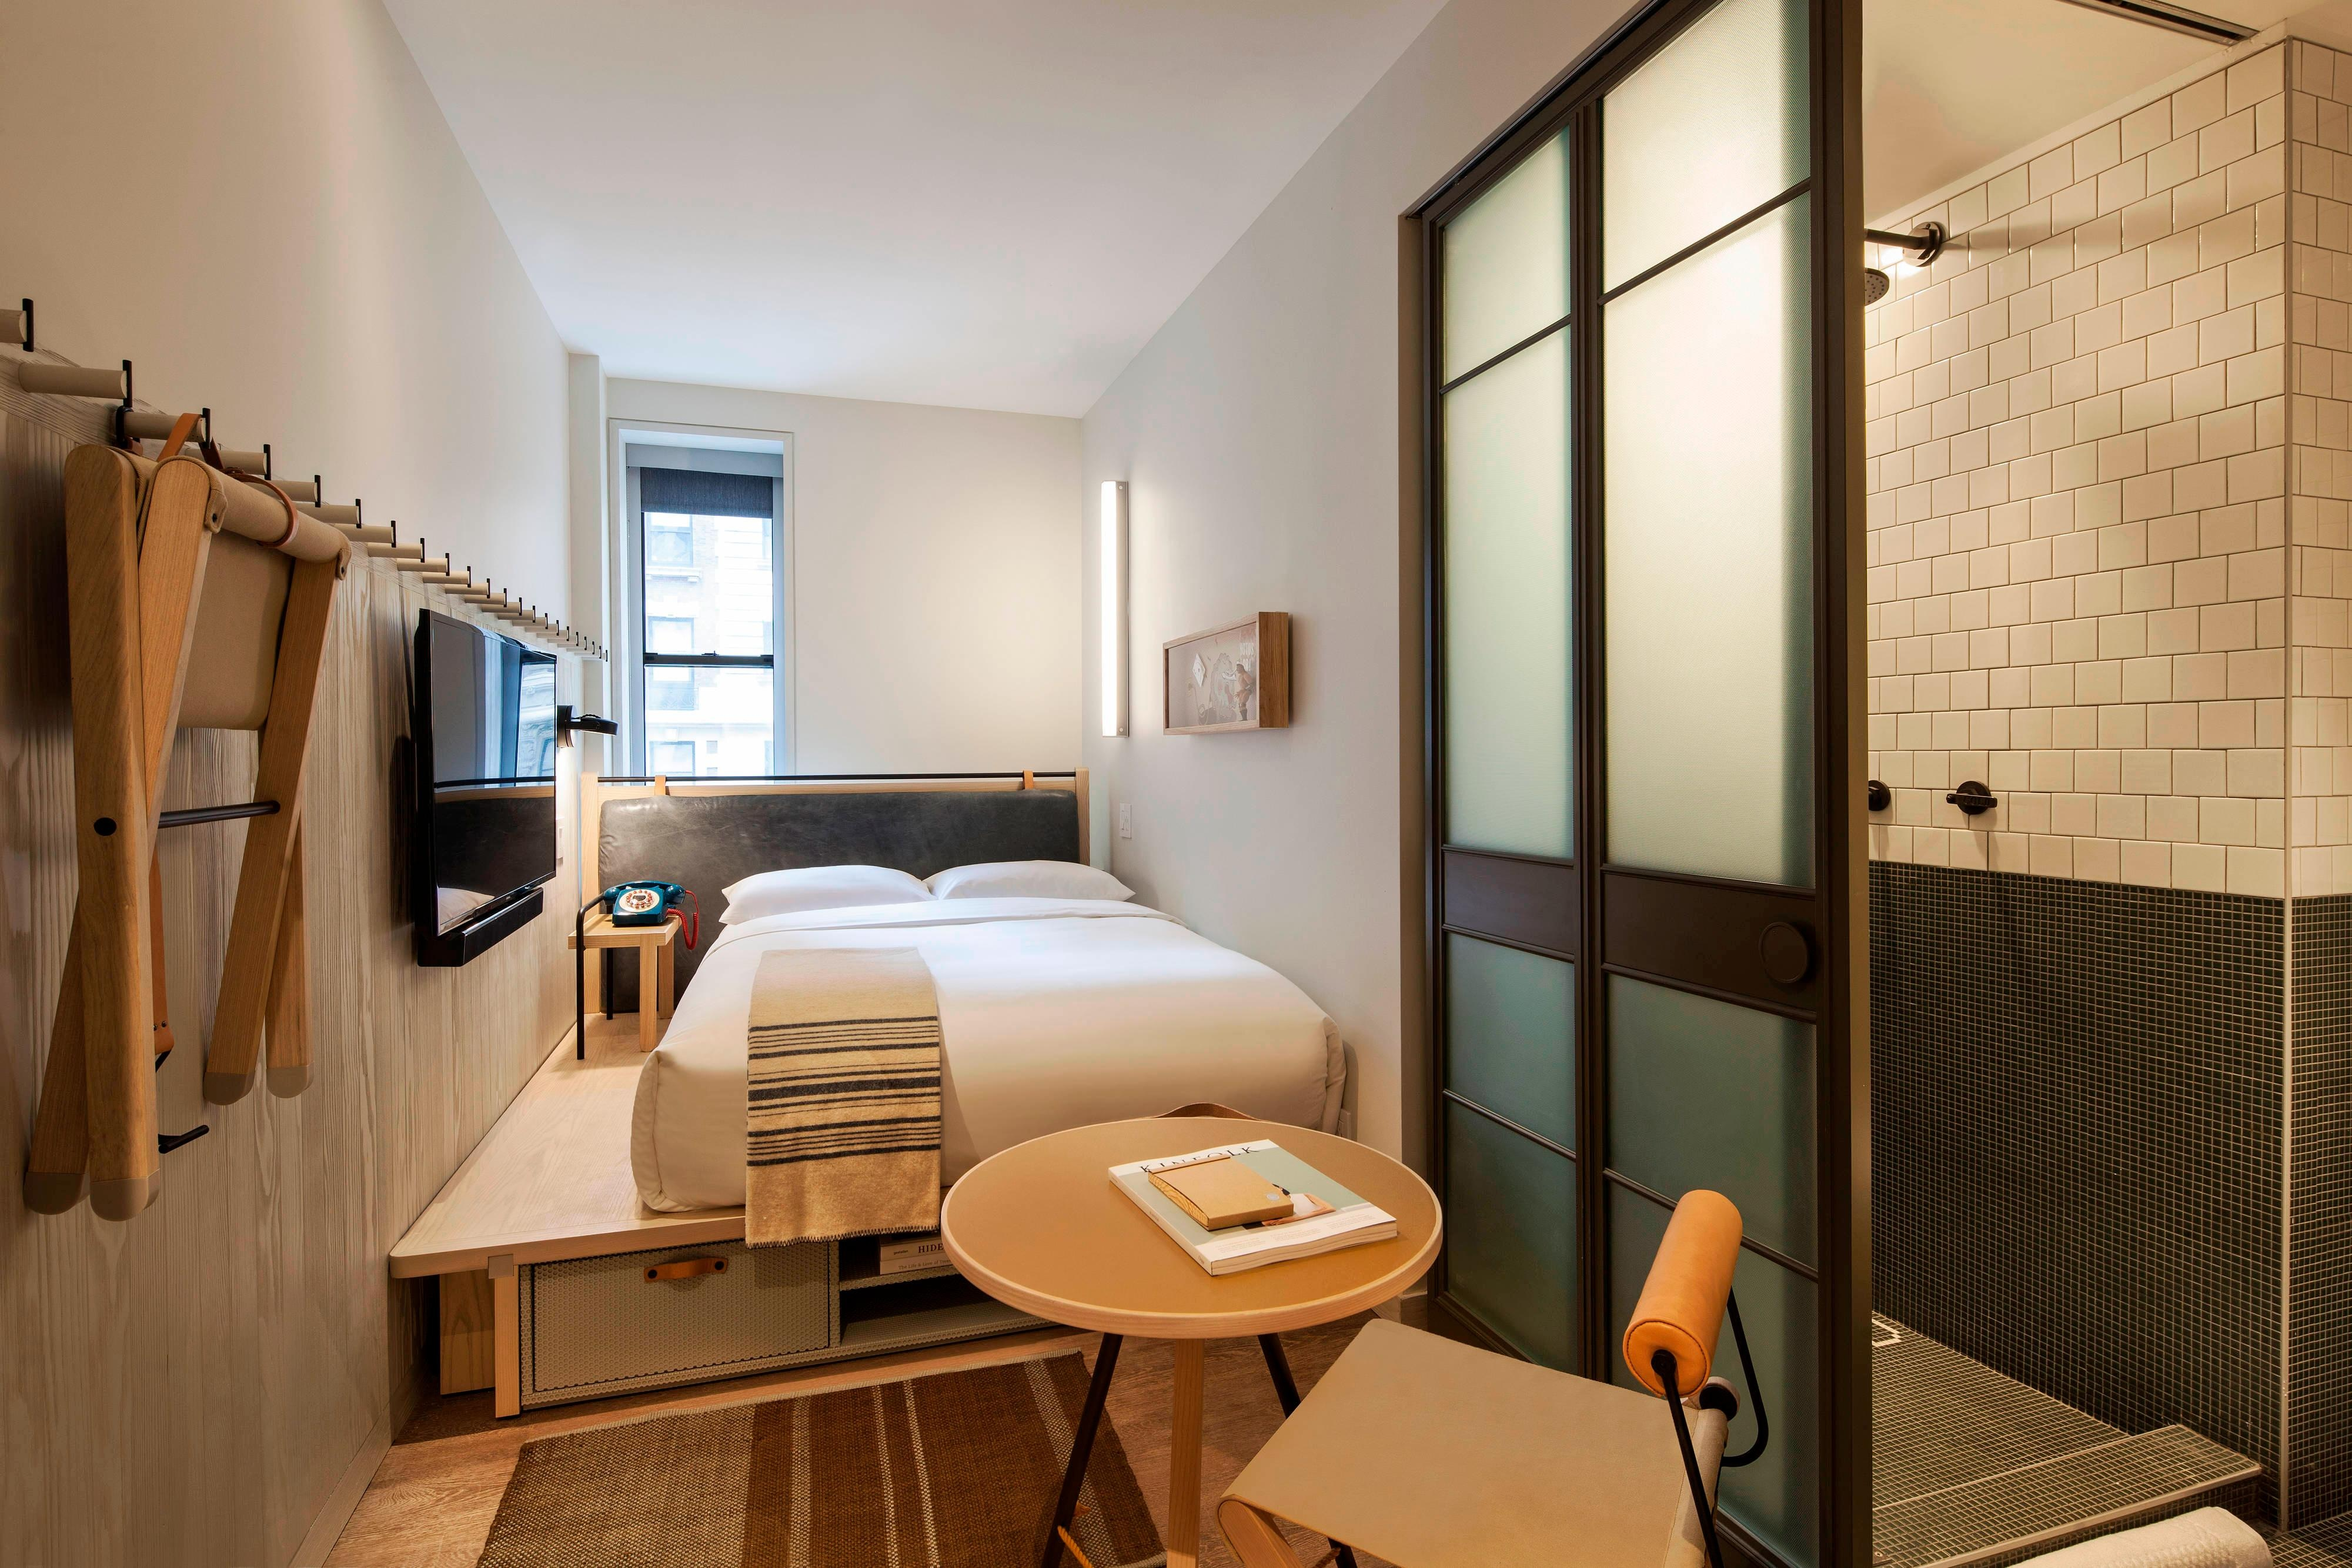 Moxy nyc times square hotel amenities hotel room highlights for Square room interior design review